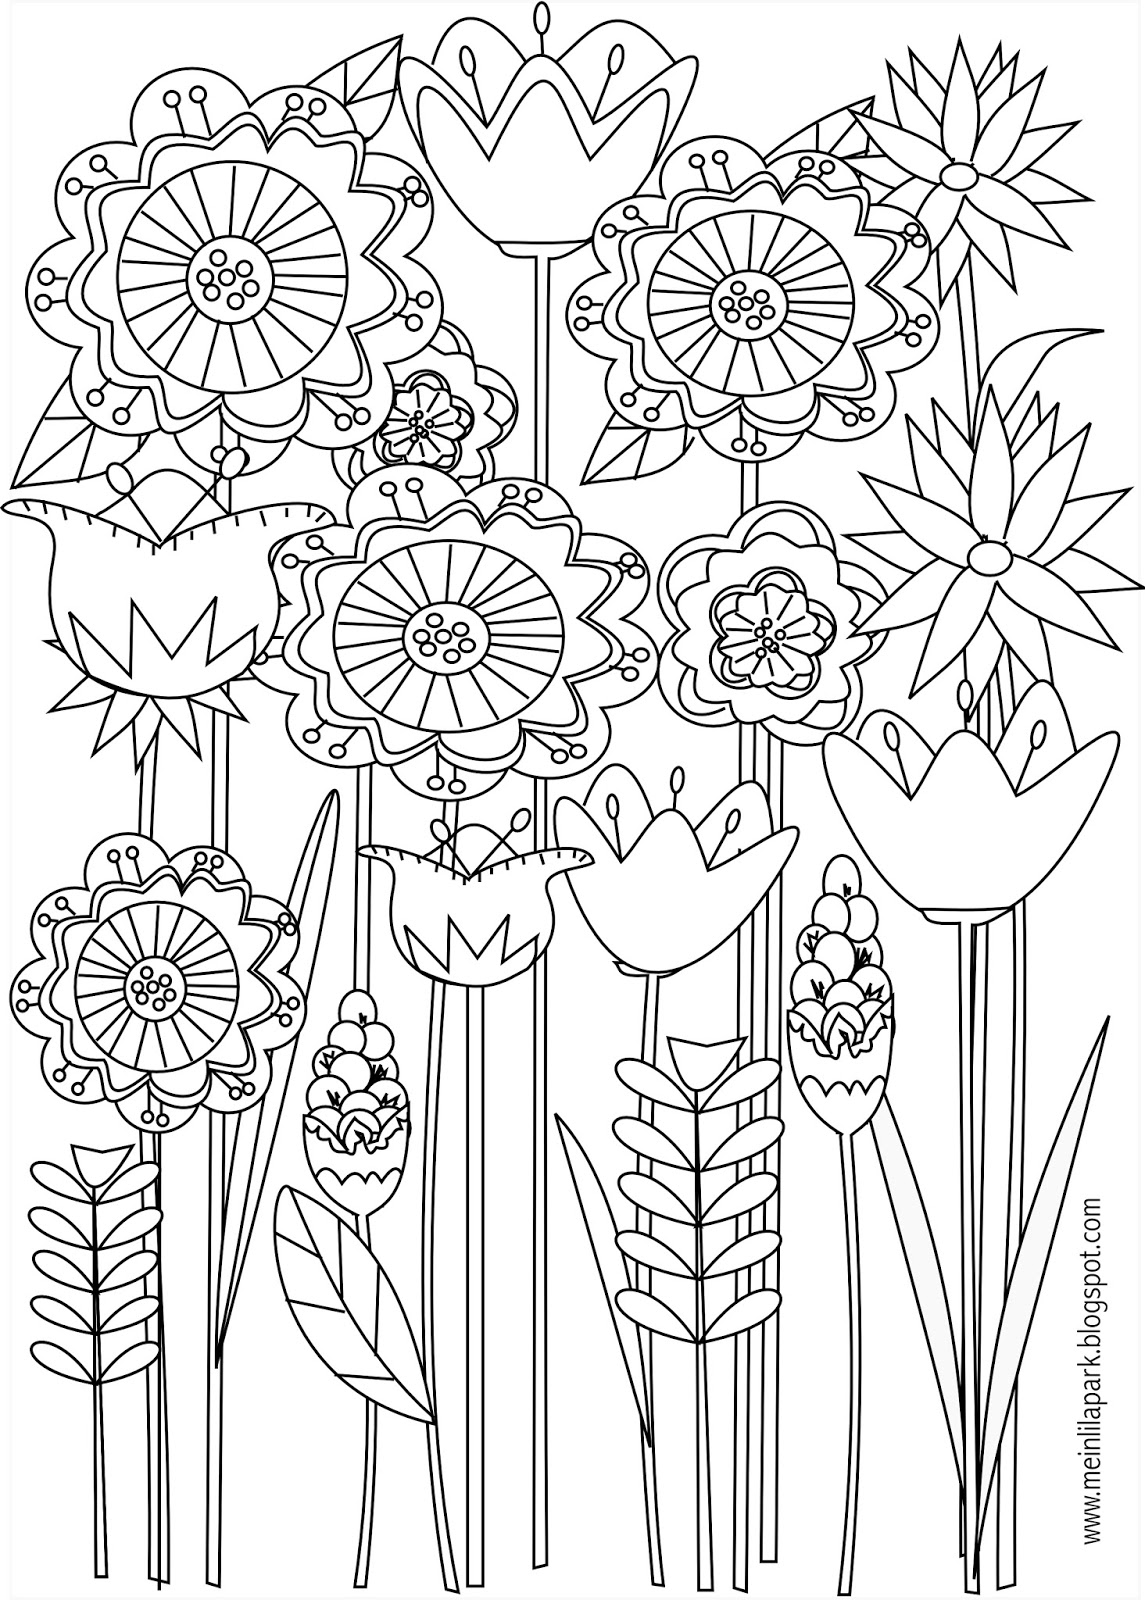 free flower coloring pages for adults free download to print beautiful spring flower coloring pages coloring for adults flower free